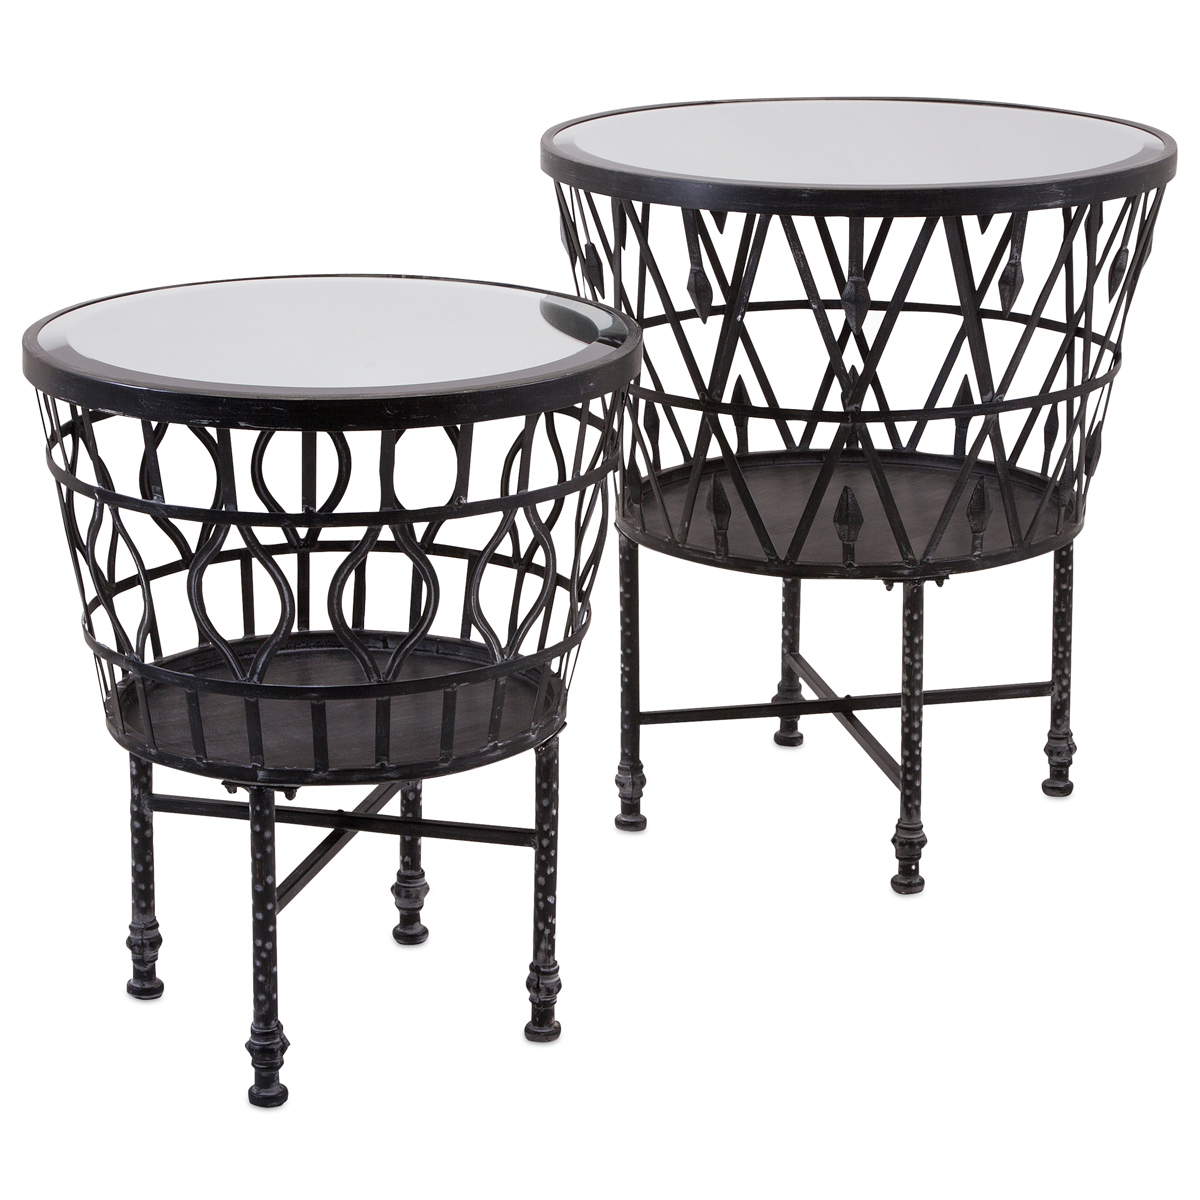 kelsey wrought iron accent tables set inch high black table headboard with lights french round side decorations skinny ikea balcony furniture wicker barn door pantry square